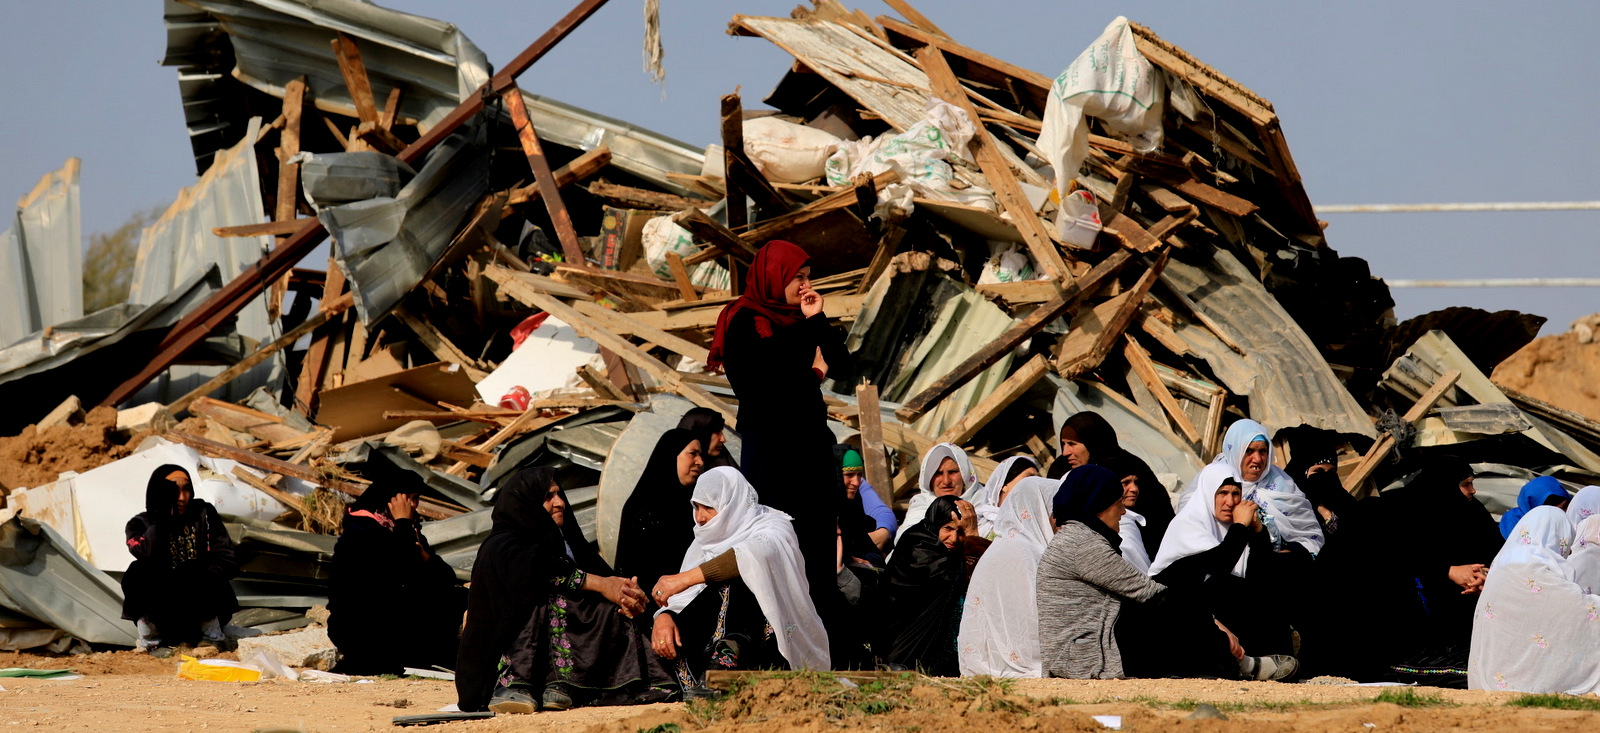 Israel Destroys the Homes and History of Palestine's Indigenous Bedouin